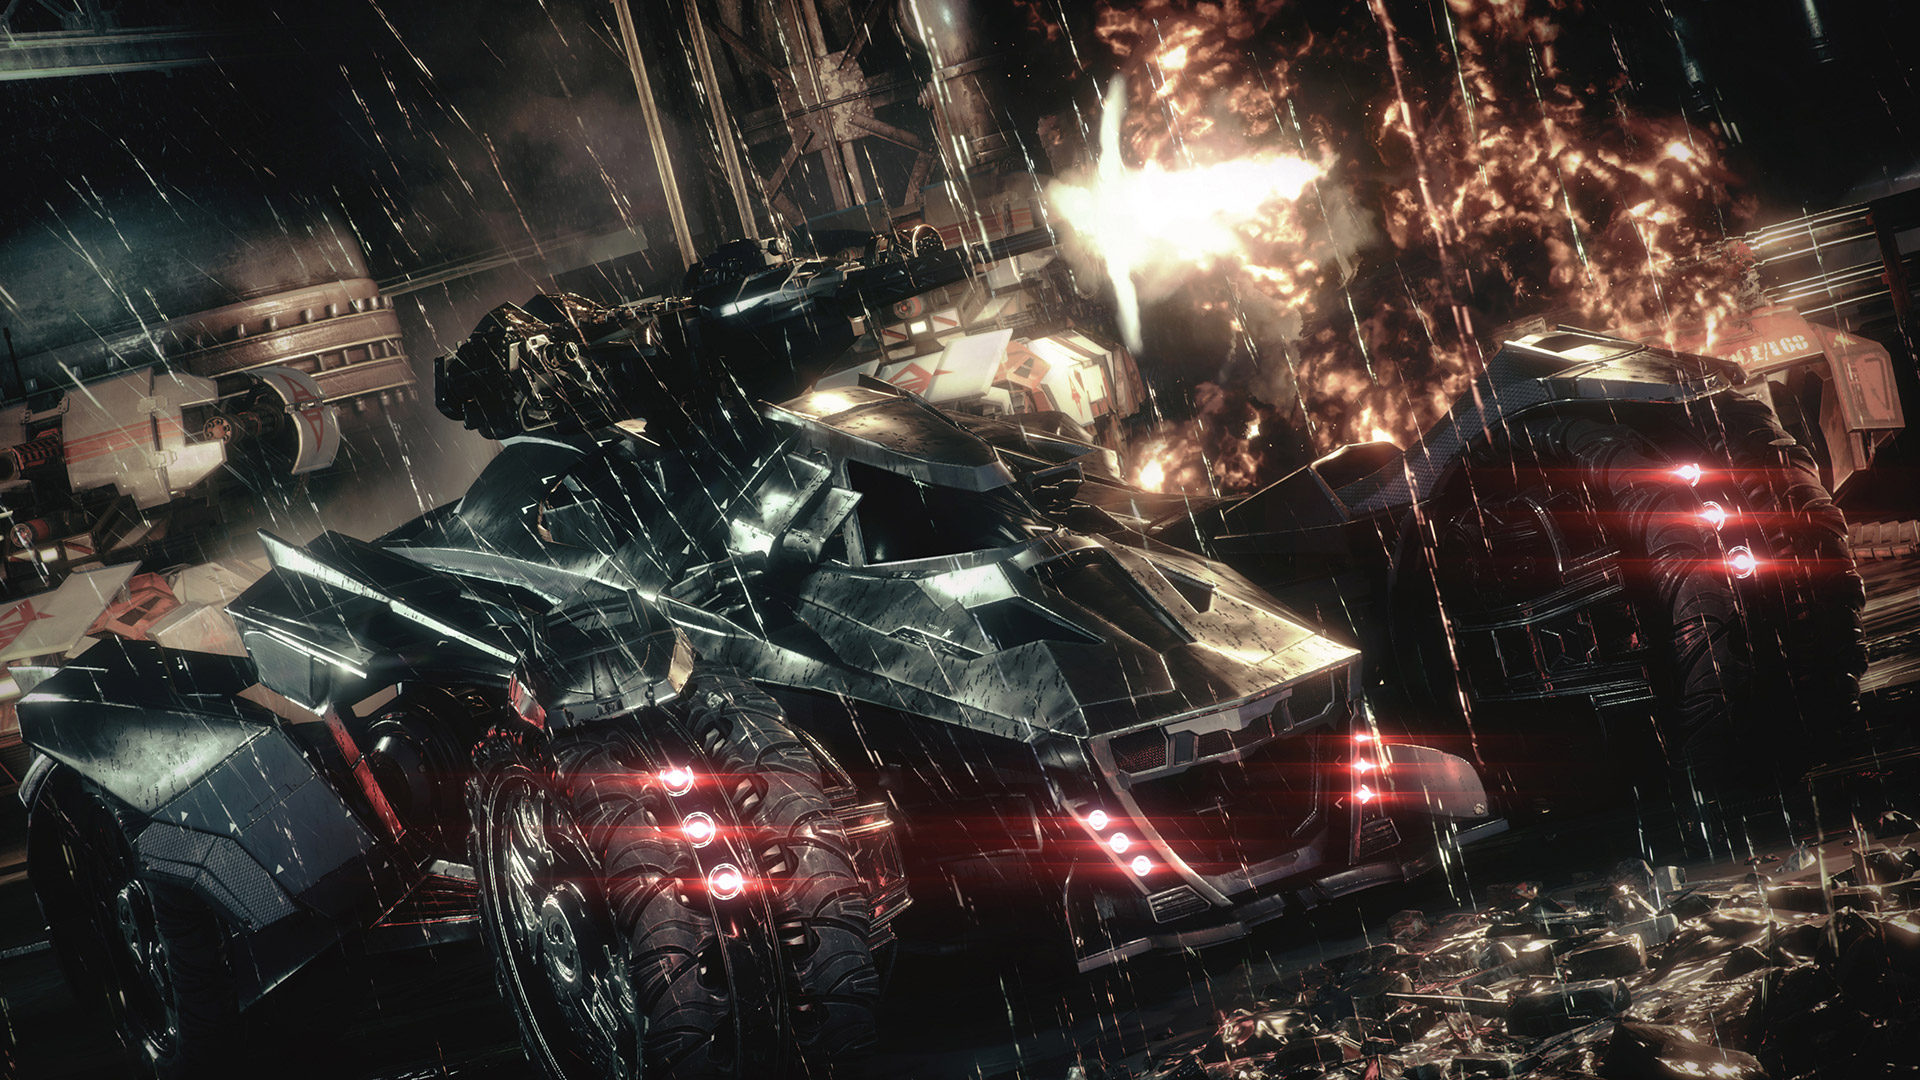 Batman Arkham Knight Wallpaper in 1920x1080 1920x1080